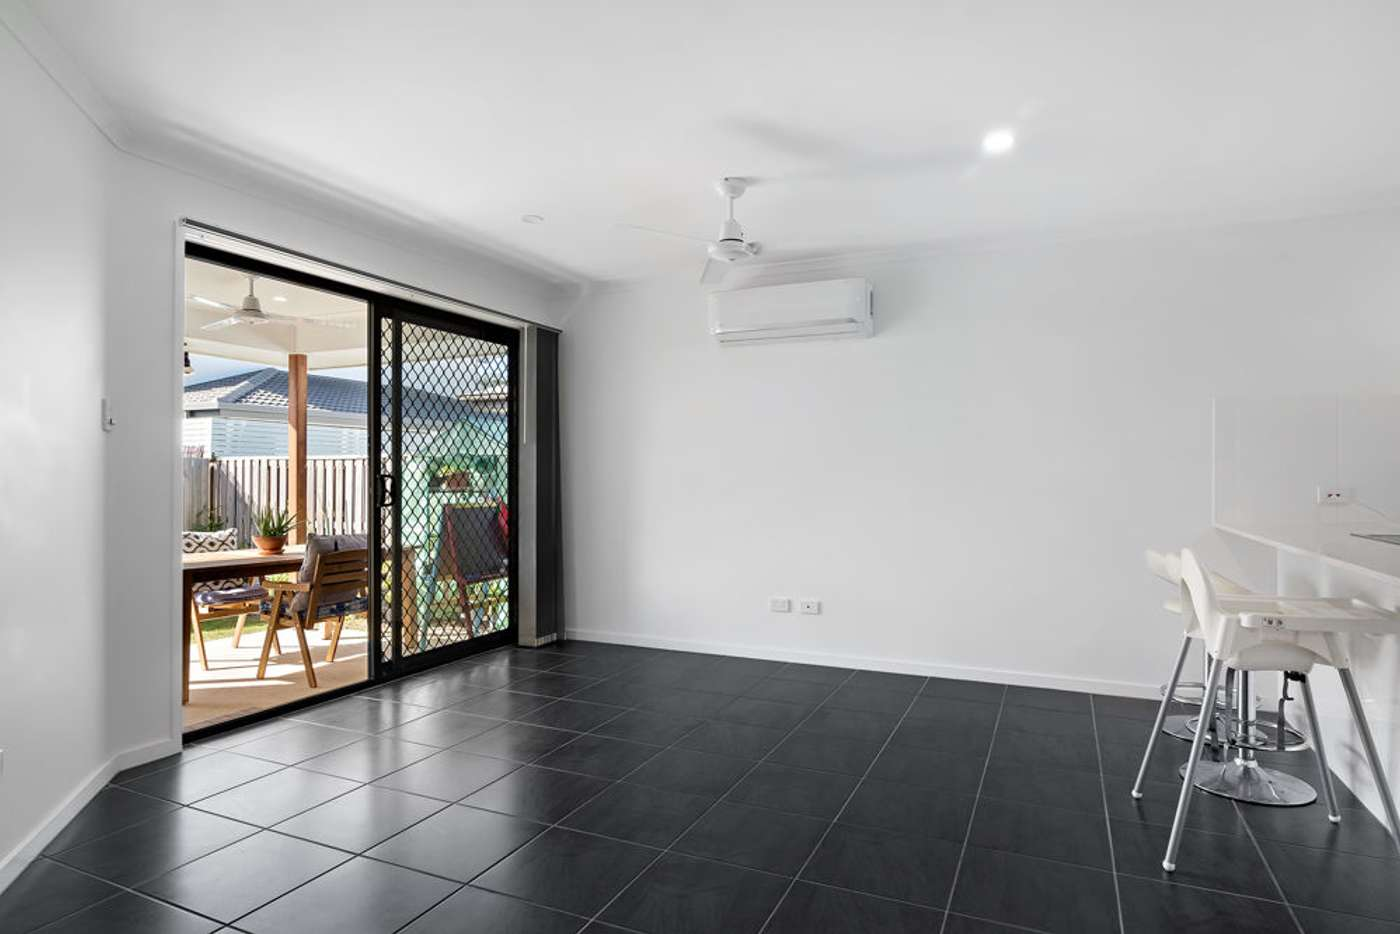 Fifth view of Homely house listing, 11 Dryander Street, North Lakes QLD 4509